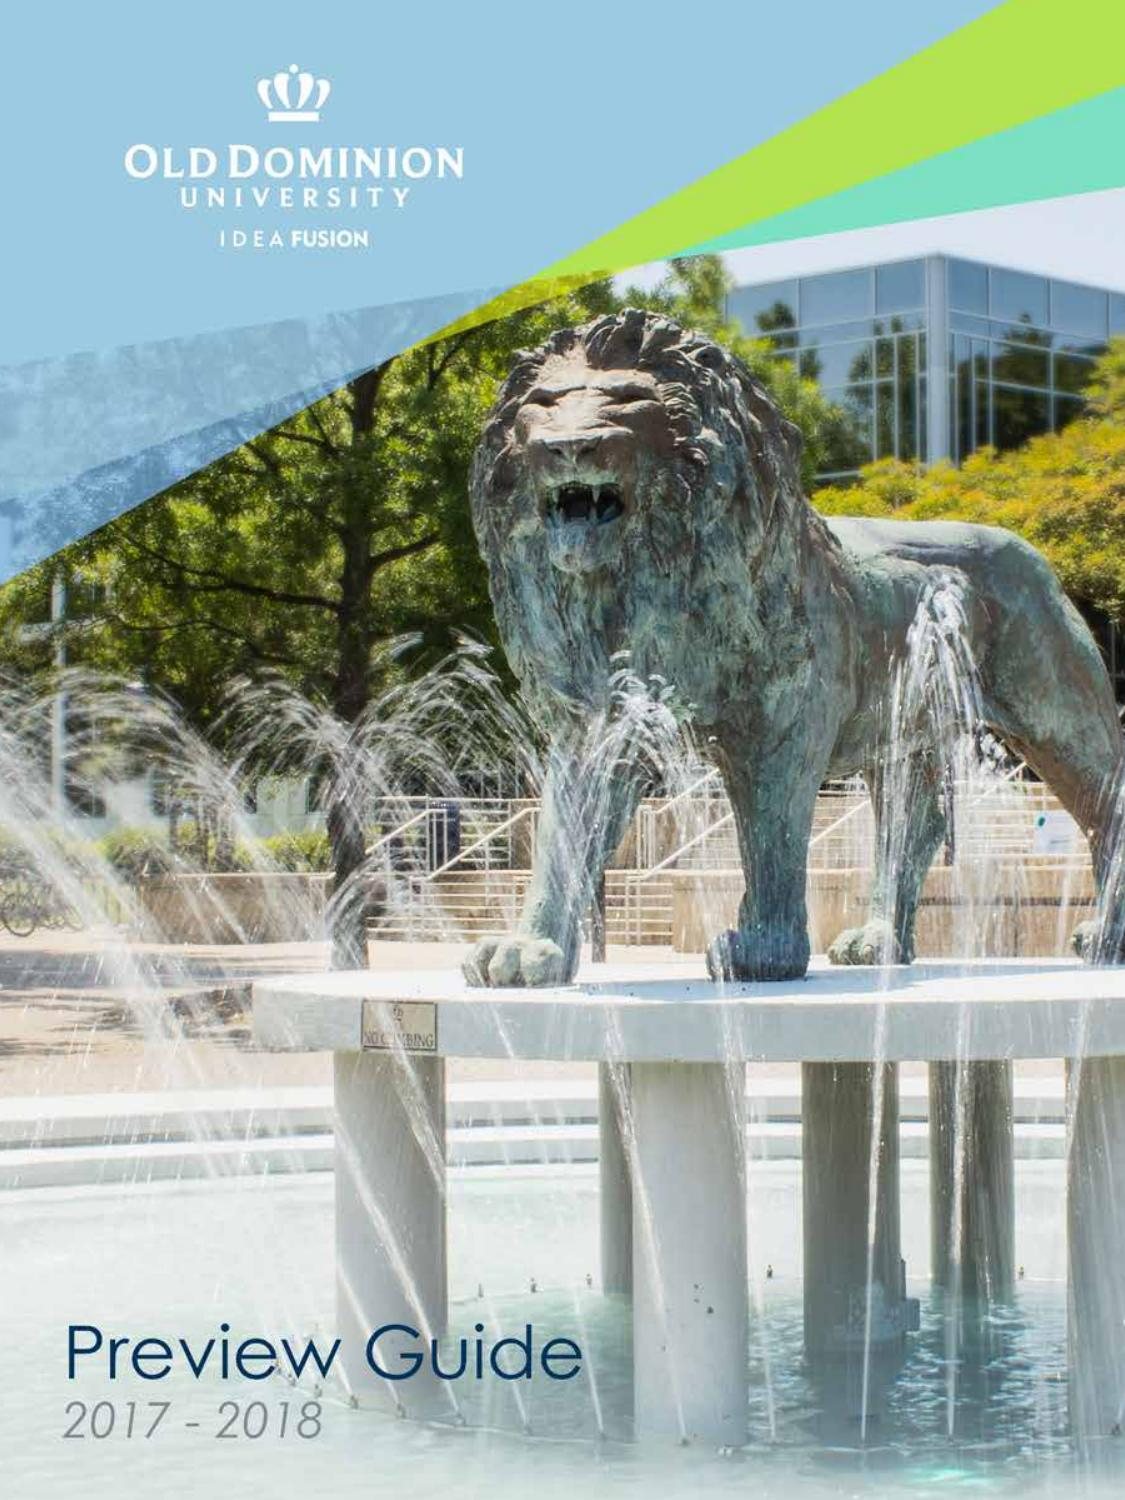 2017 Preview Guideold Dominion University - Issuu With Regard To Spring 2021 Academic Calander For Old Dominion University